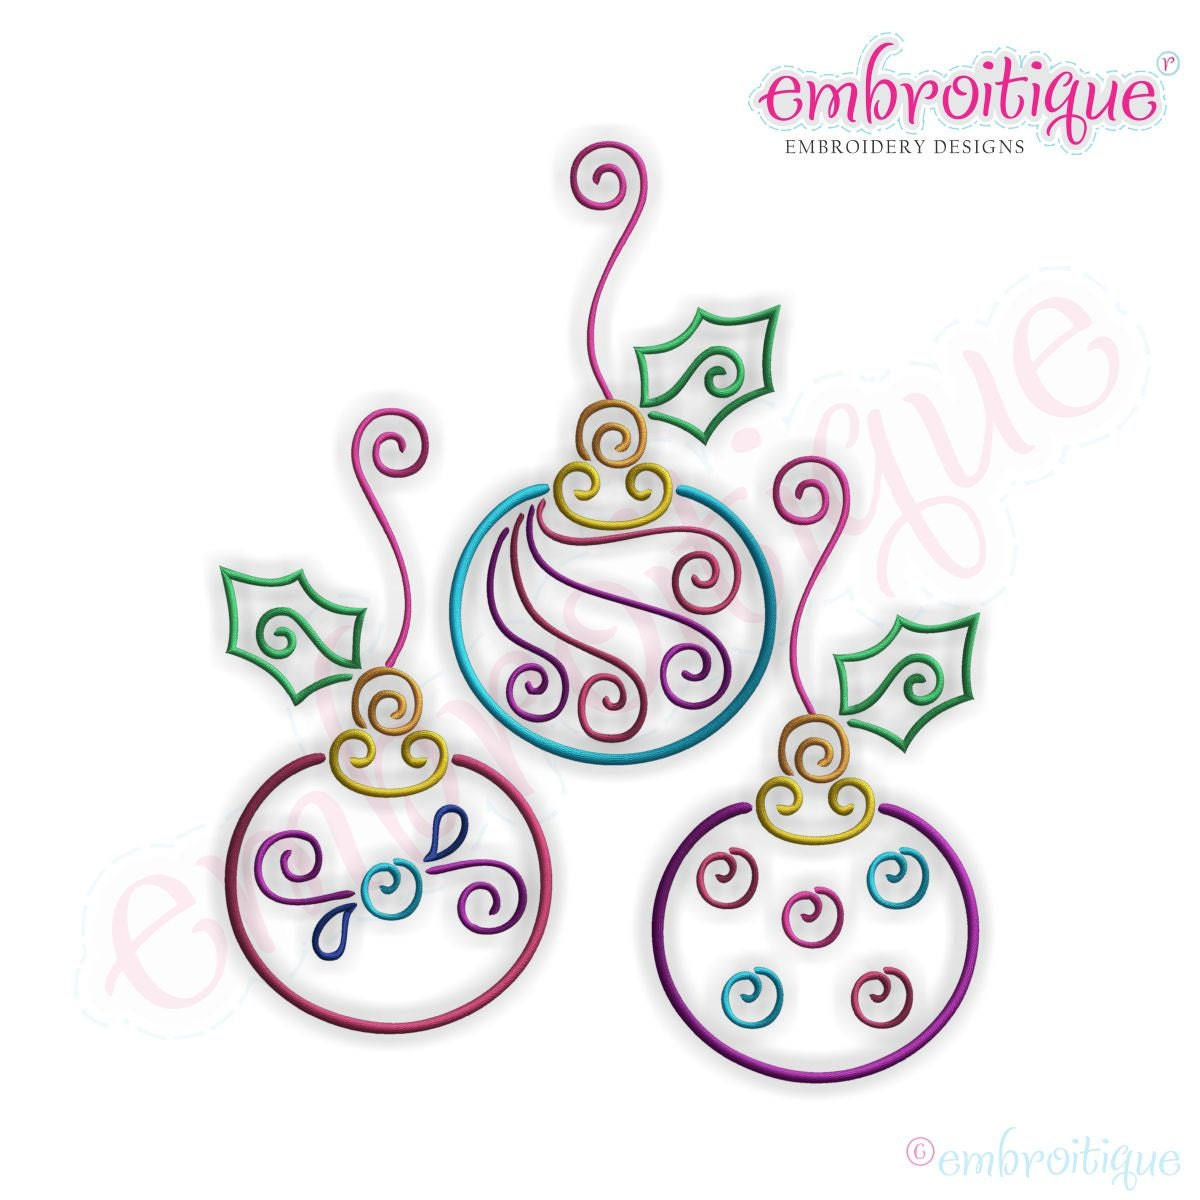 Twirly ornament trio embroidery design small instant email